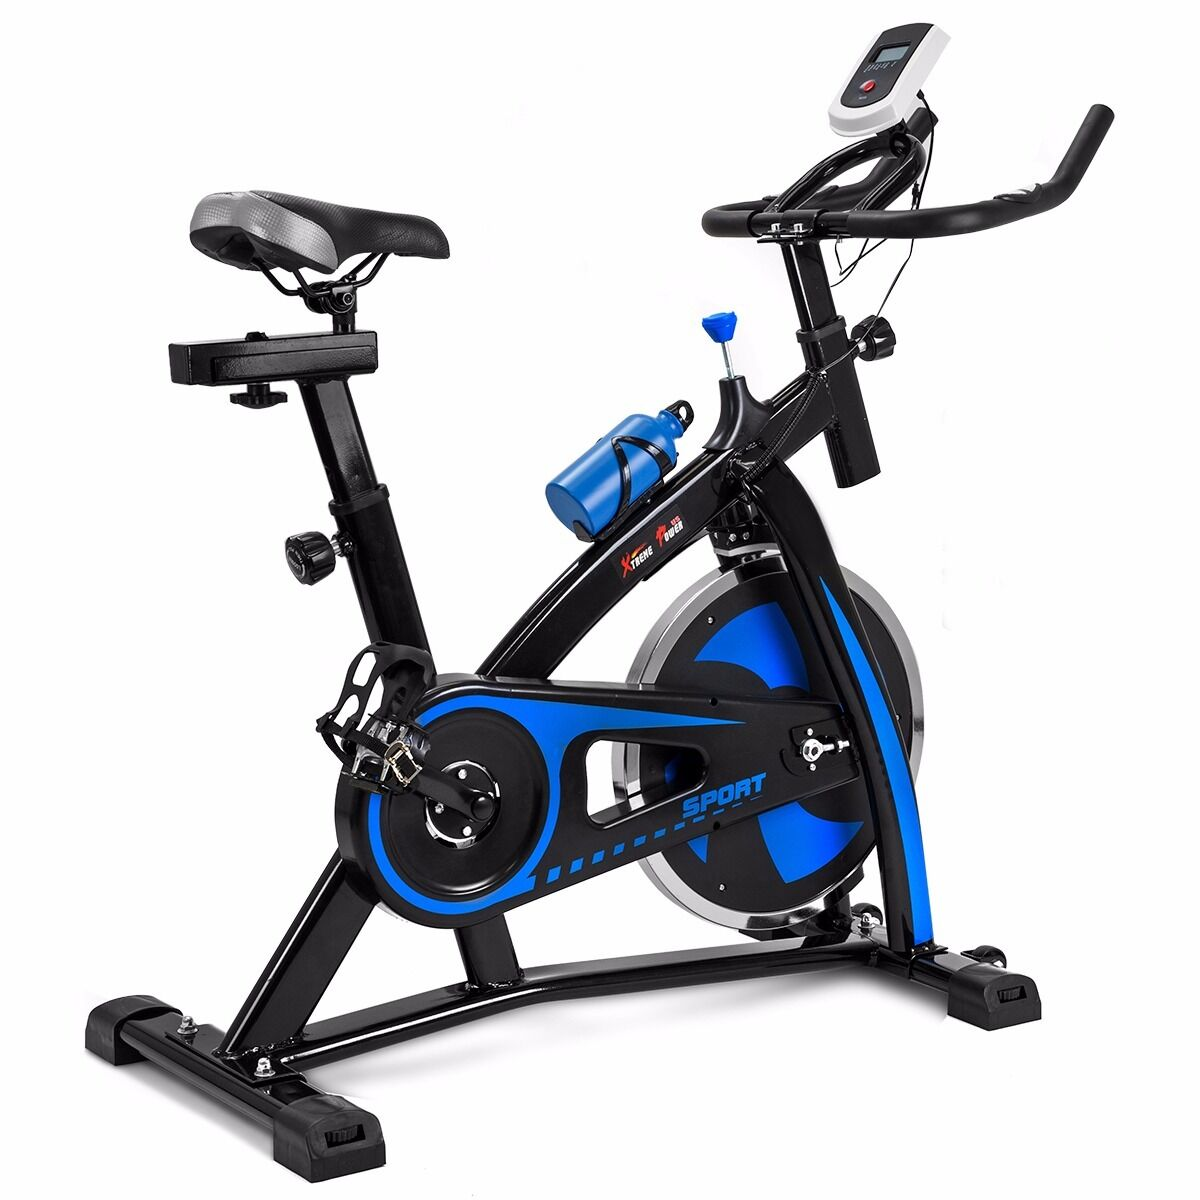 Home Exercise Equipment Bikes: Bicycle Cycling Fitness Gym Exercise Stationary Bike